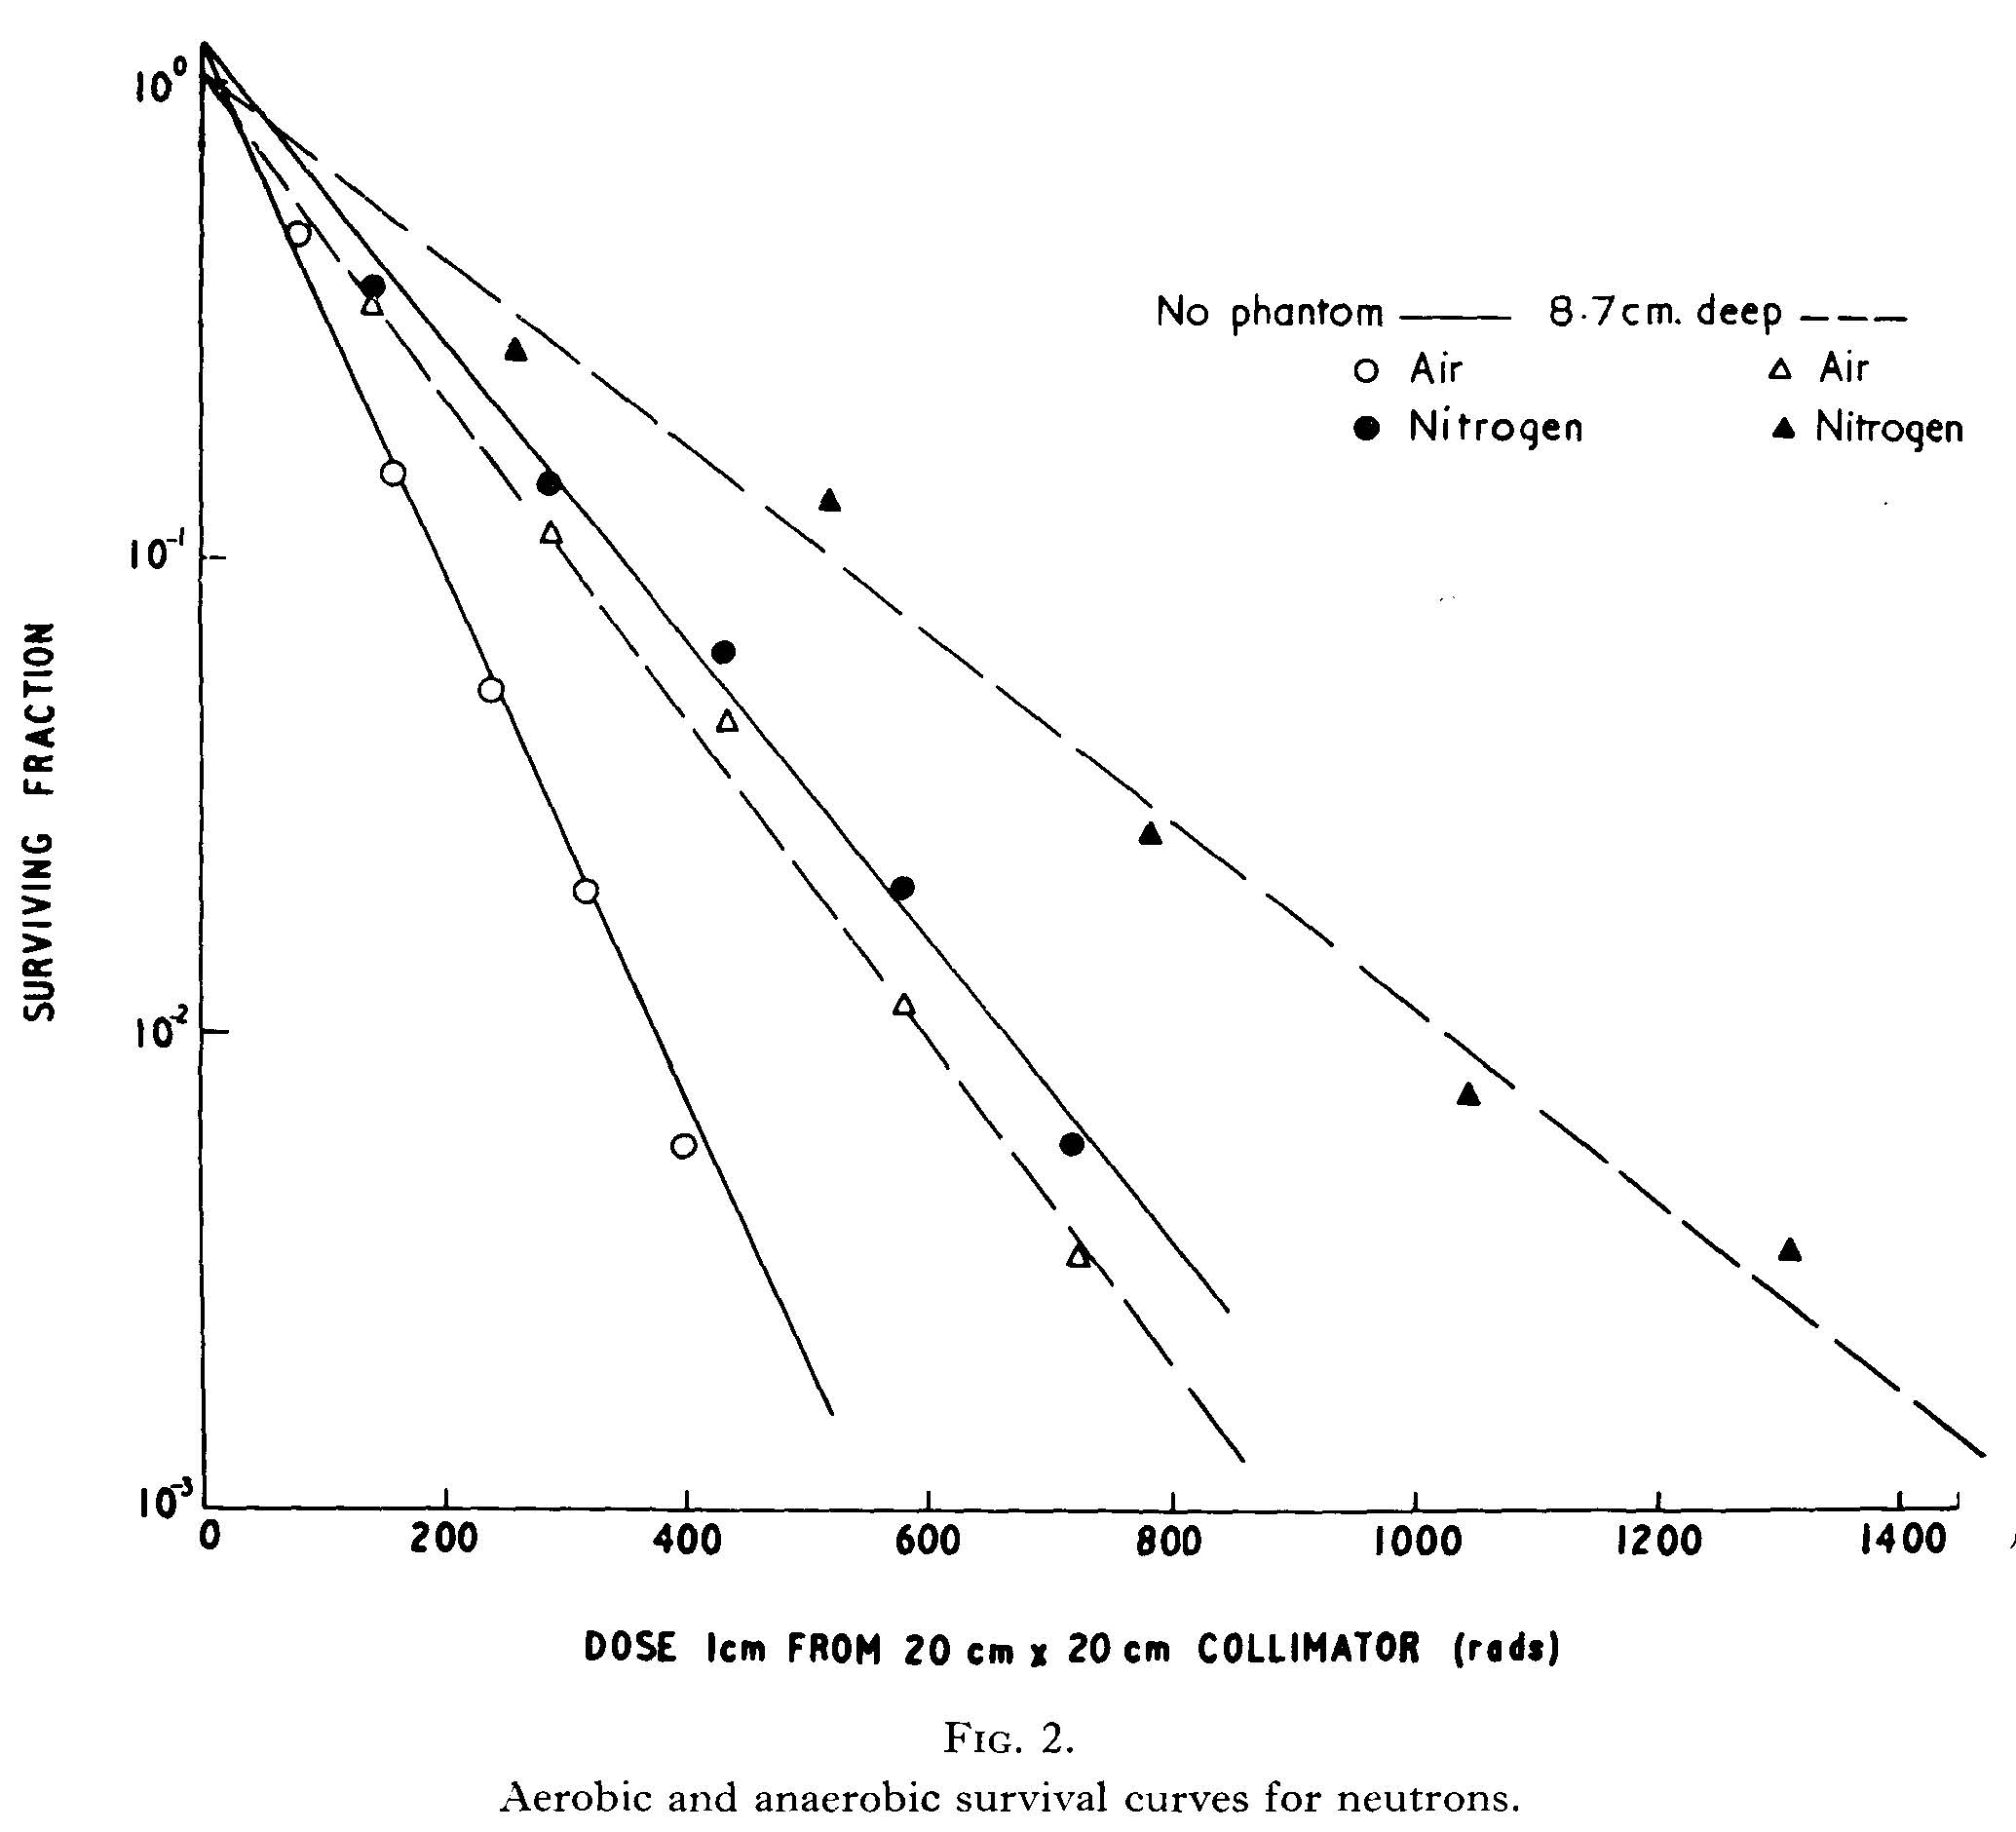 Aerobic and anaerobic survival rates of neutrons